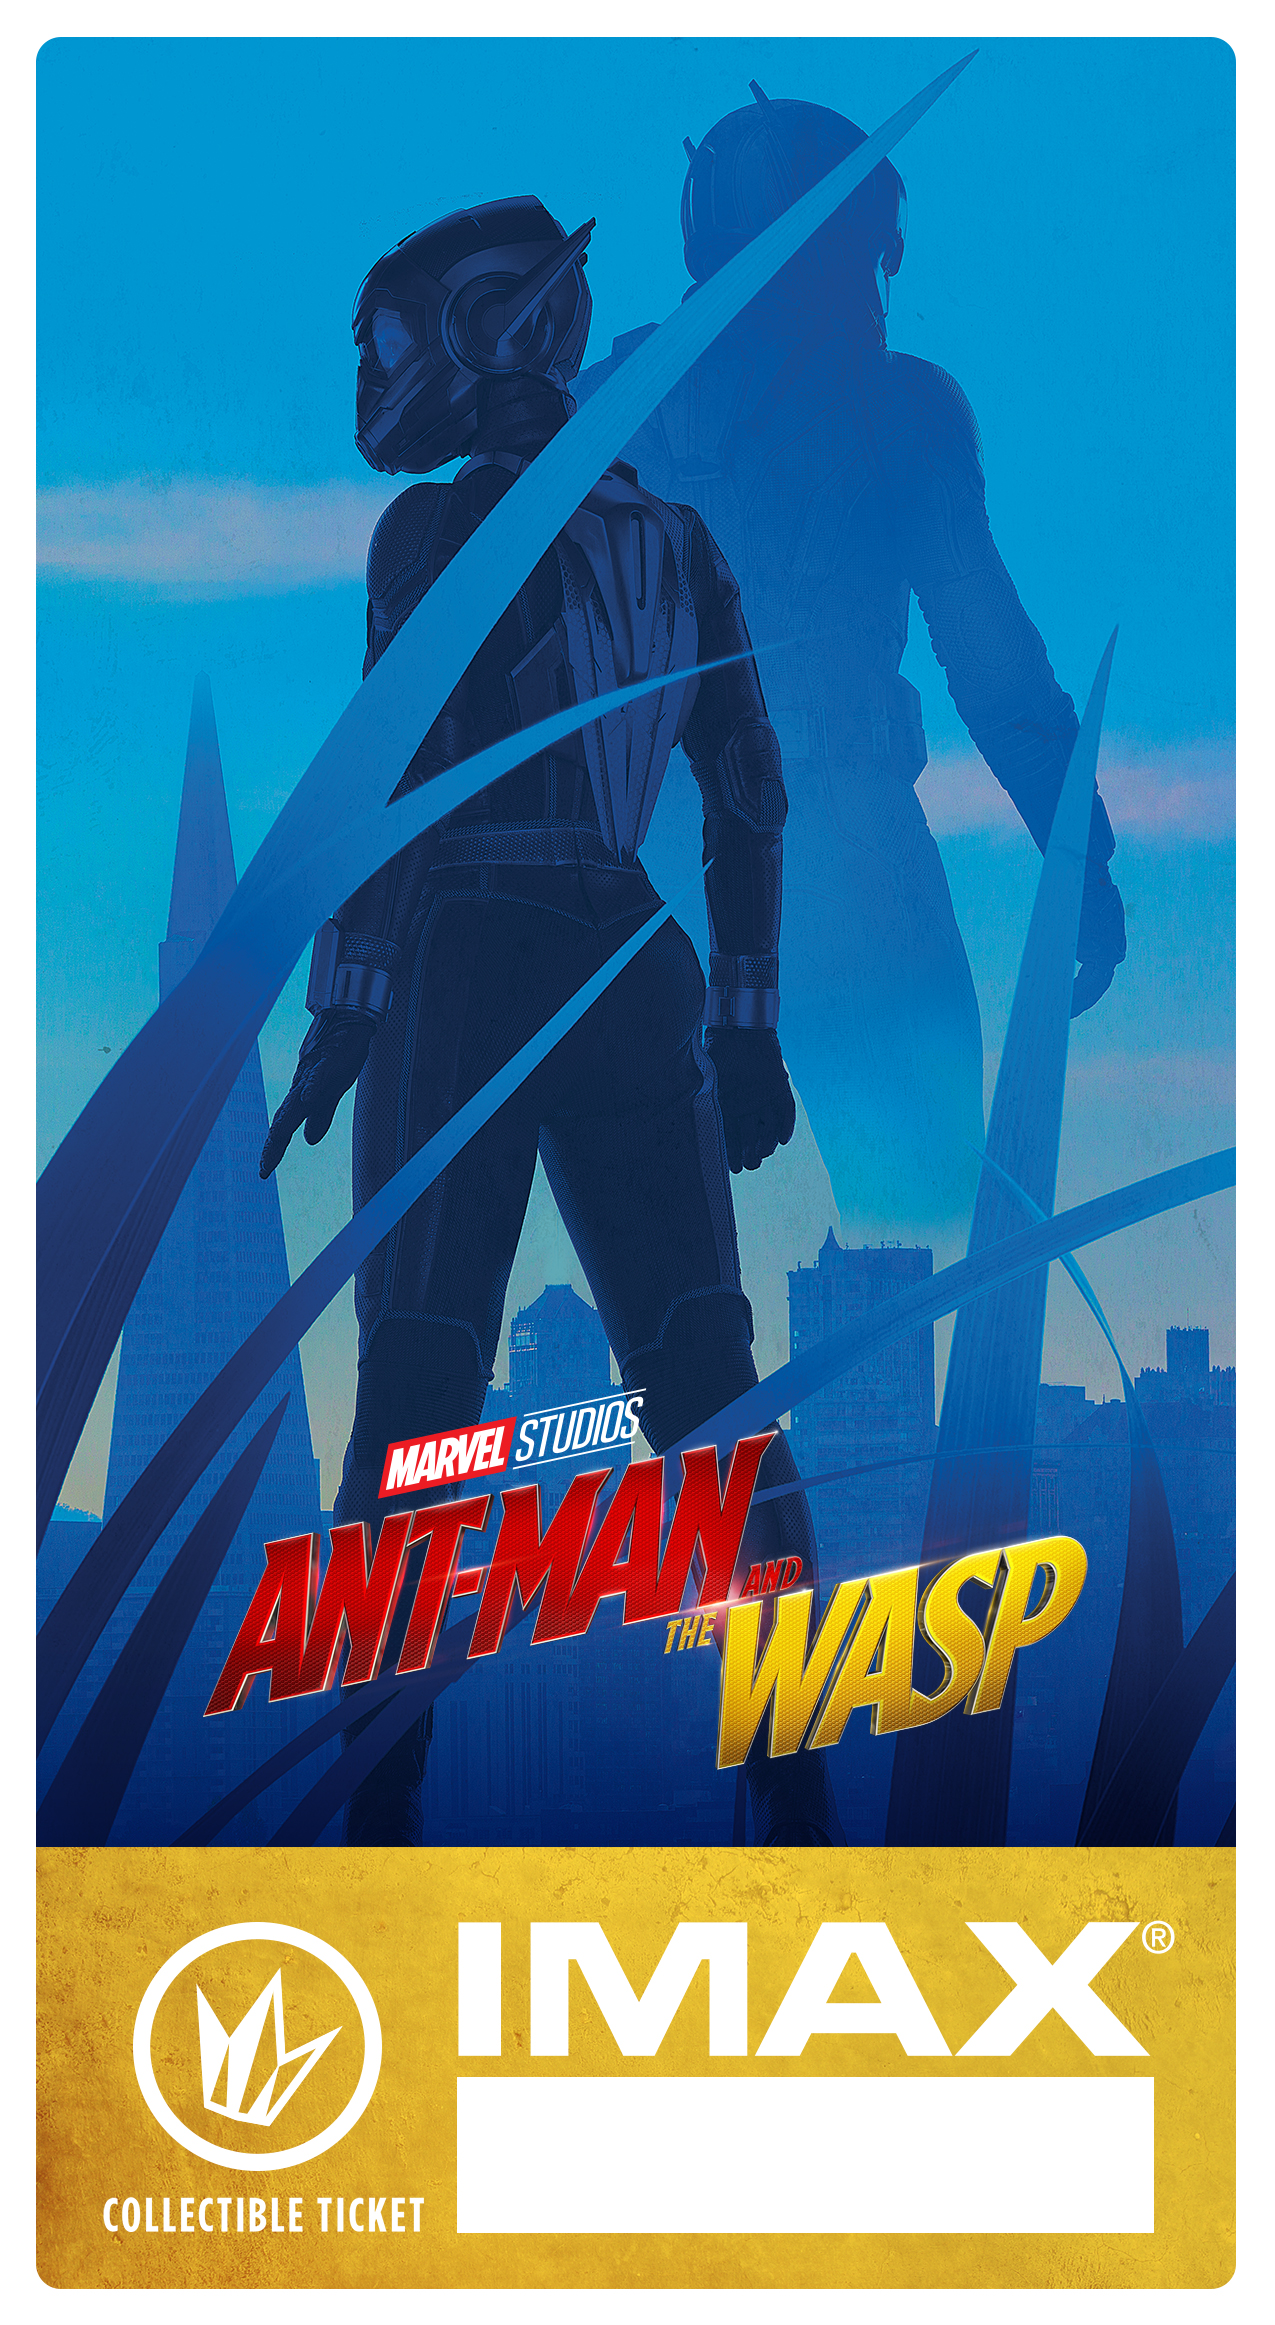 Ant-Man and the Wasp Regal Ticket